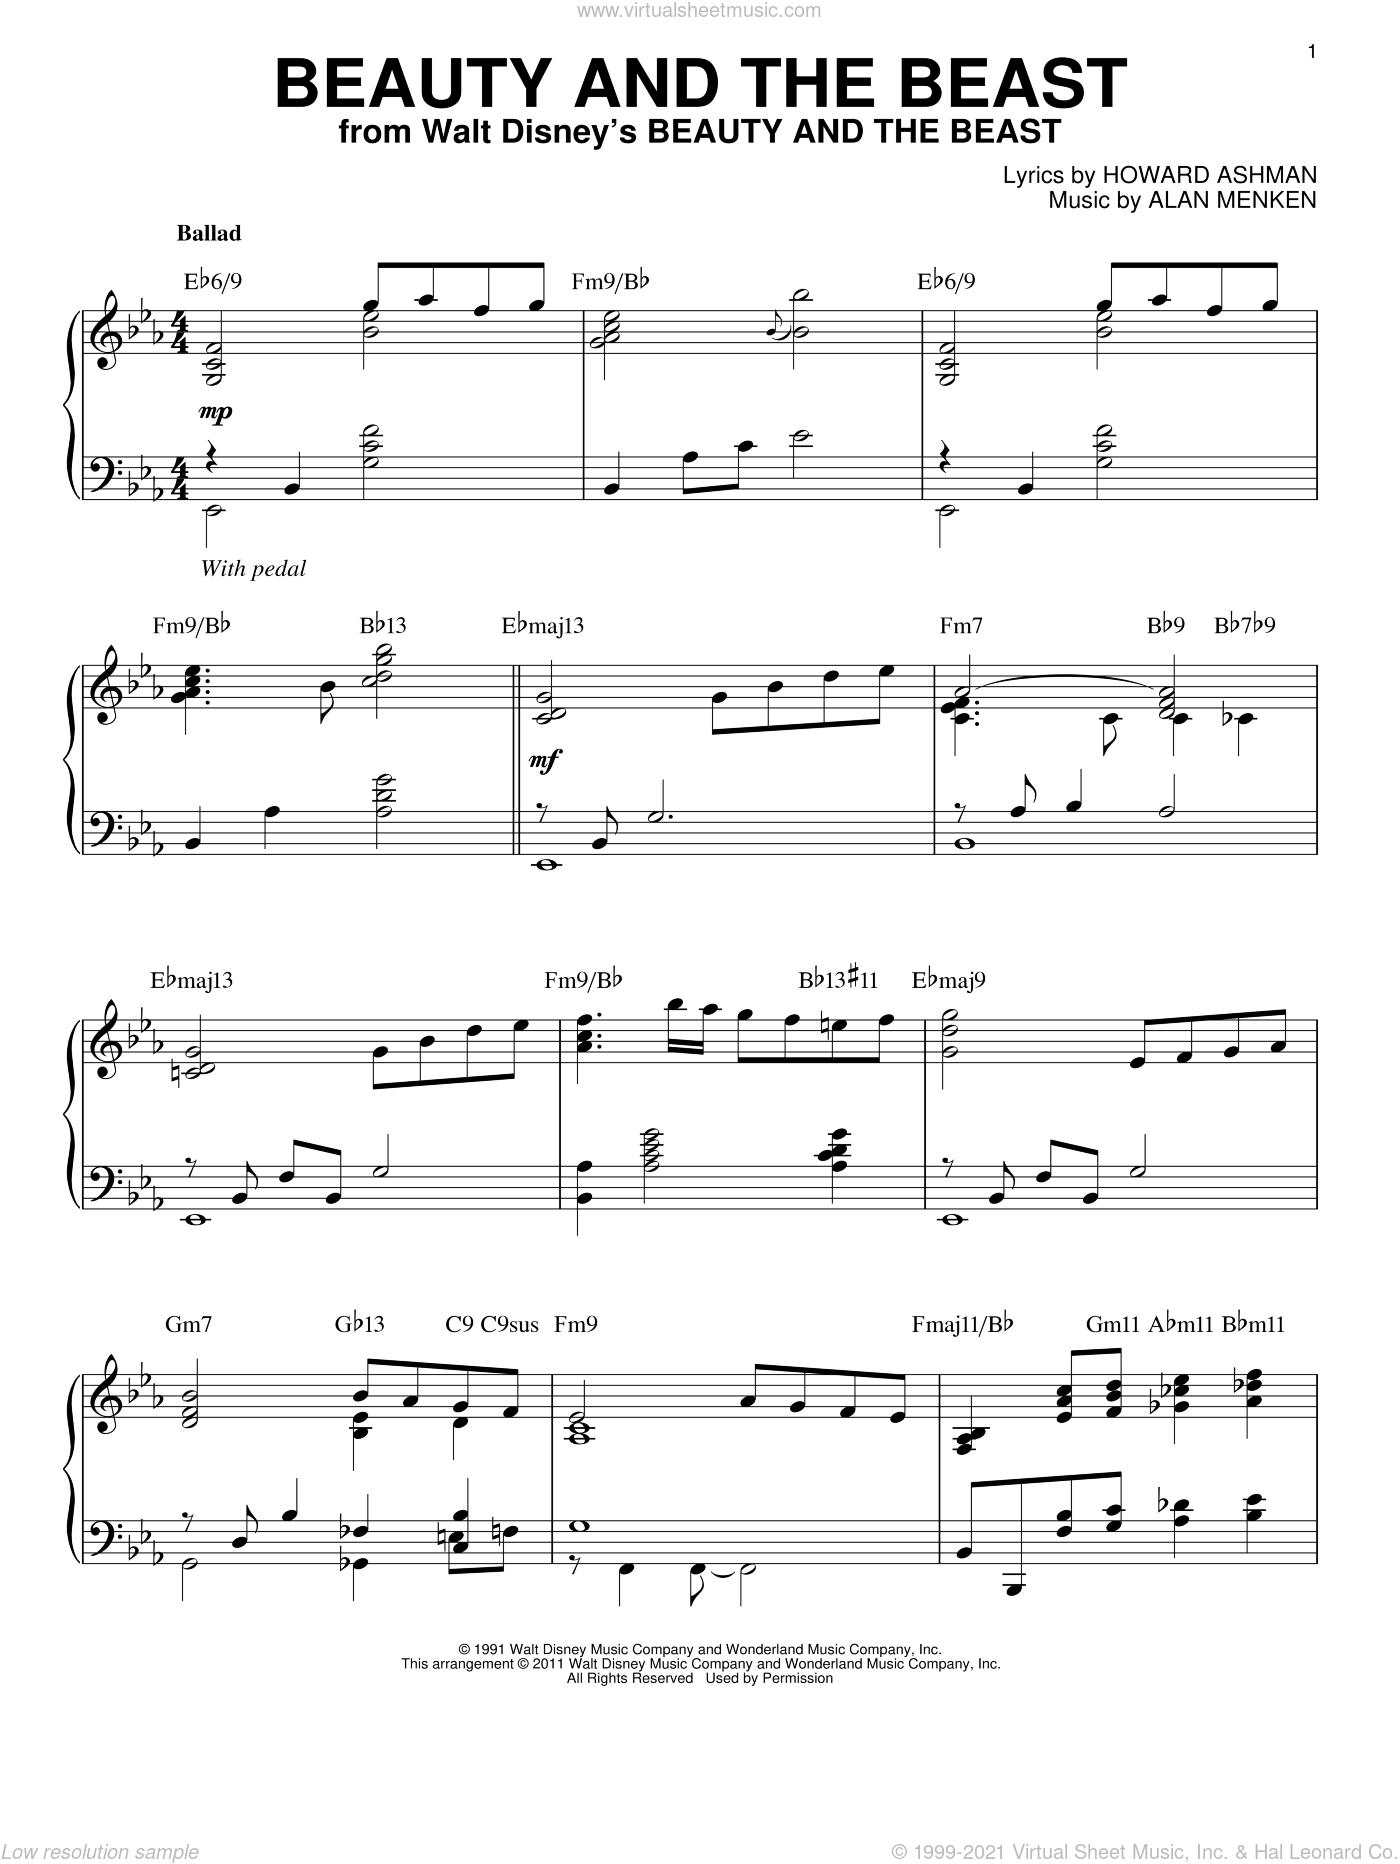 Beauty And The Beast sheet music for piano solo by Howard Ashman